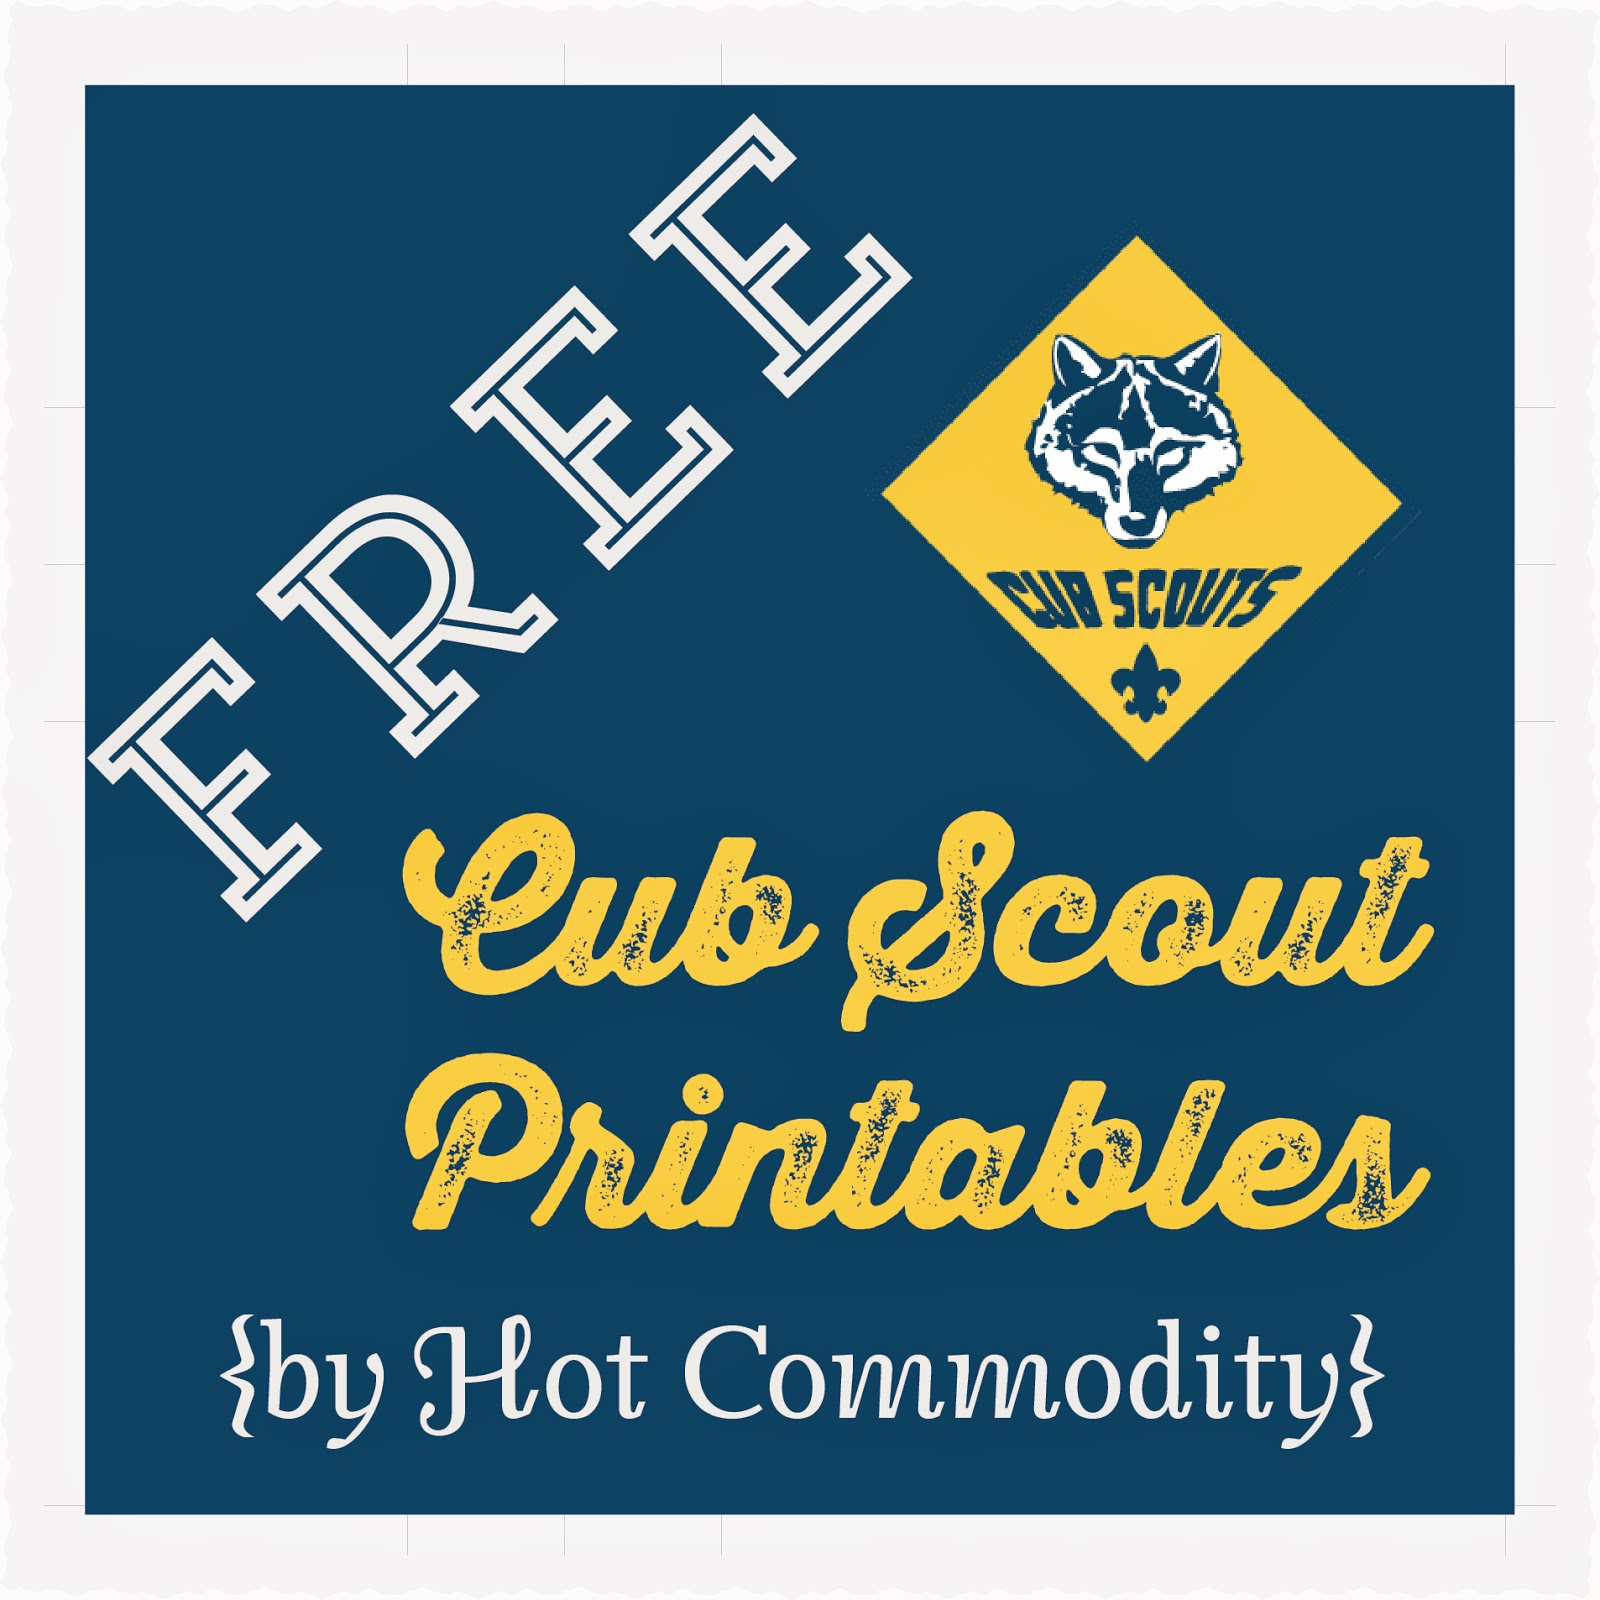 This is an image of Inventive Cub Scout Printables